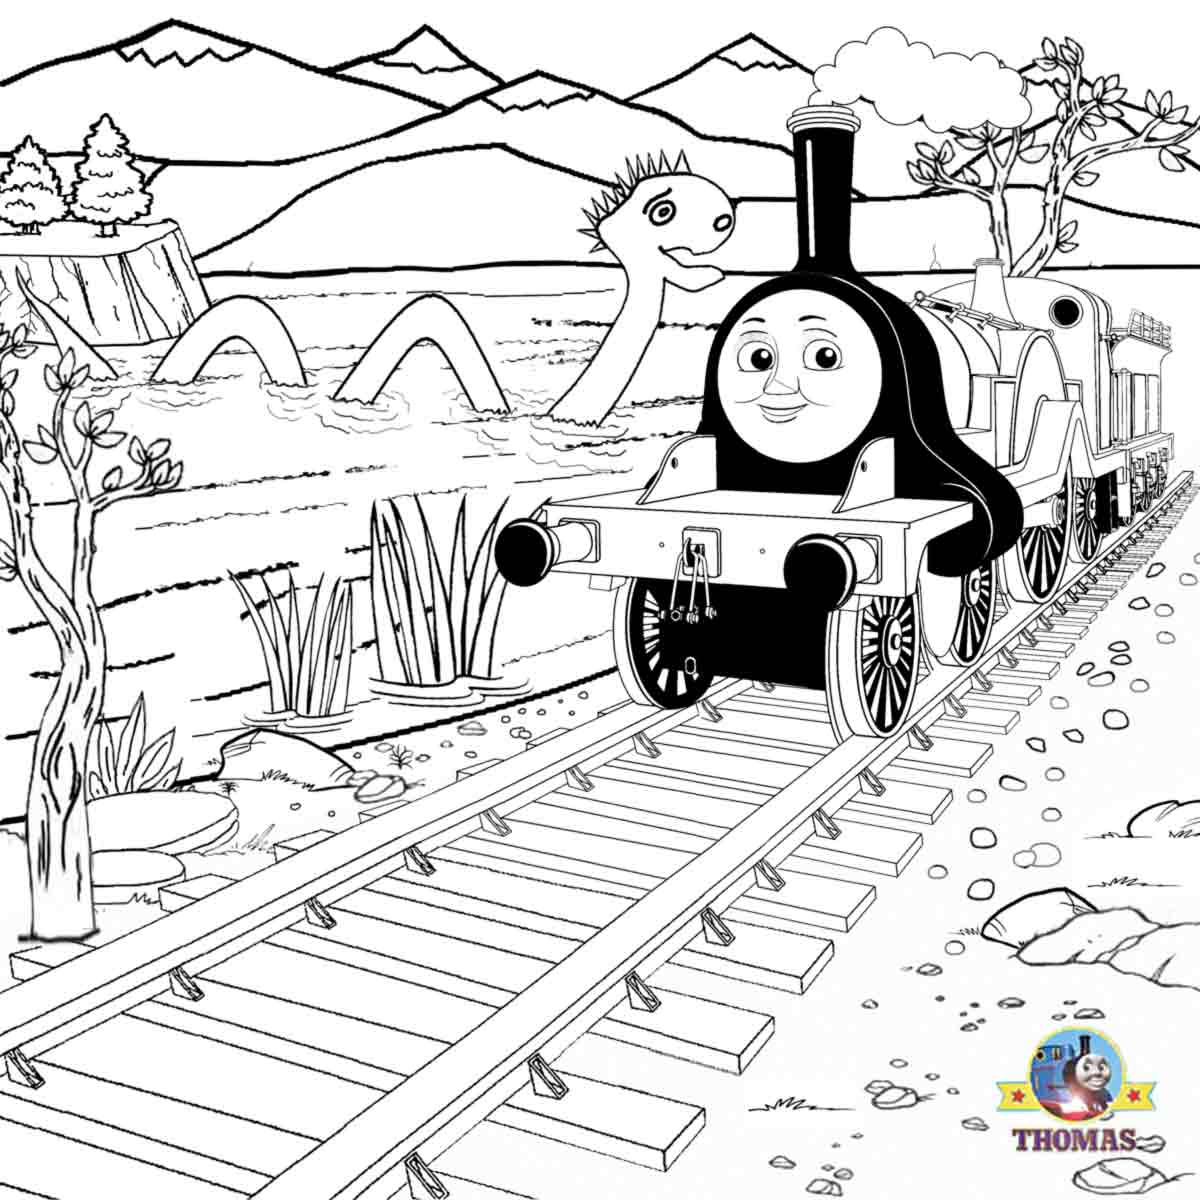 thomas and his friends coloring pages free printable halloween ideas kids activities thomas and coloring friends pages his thomas